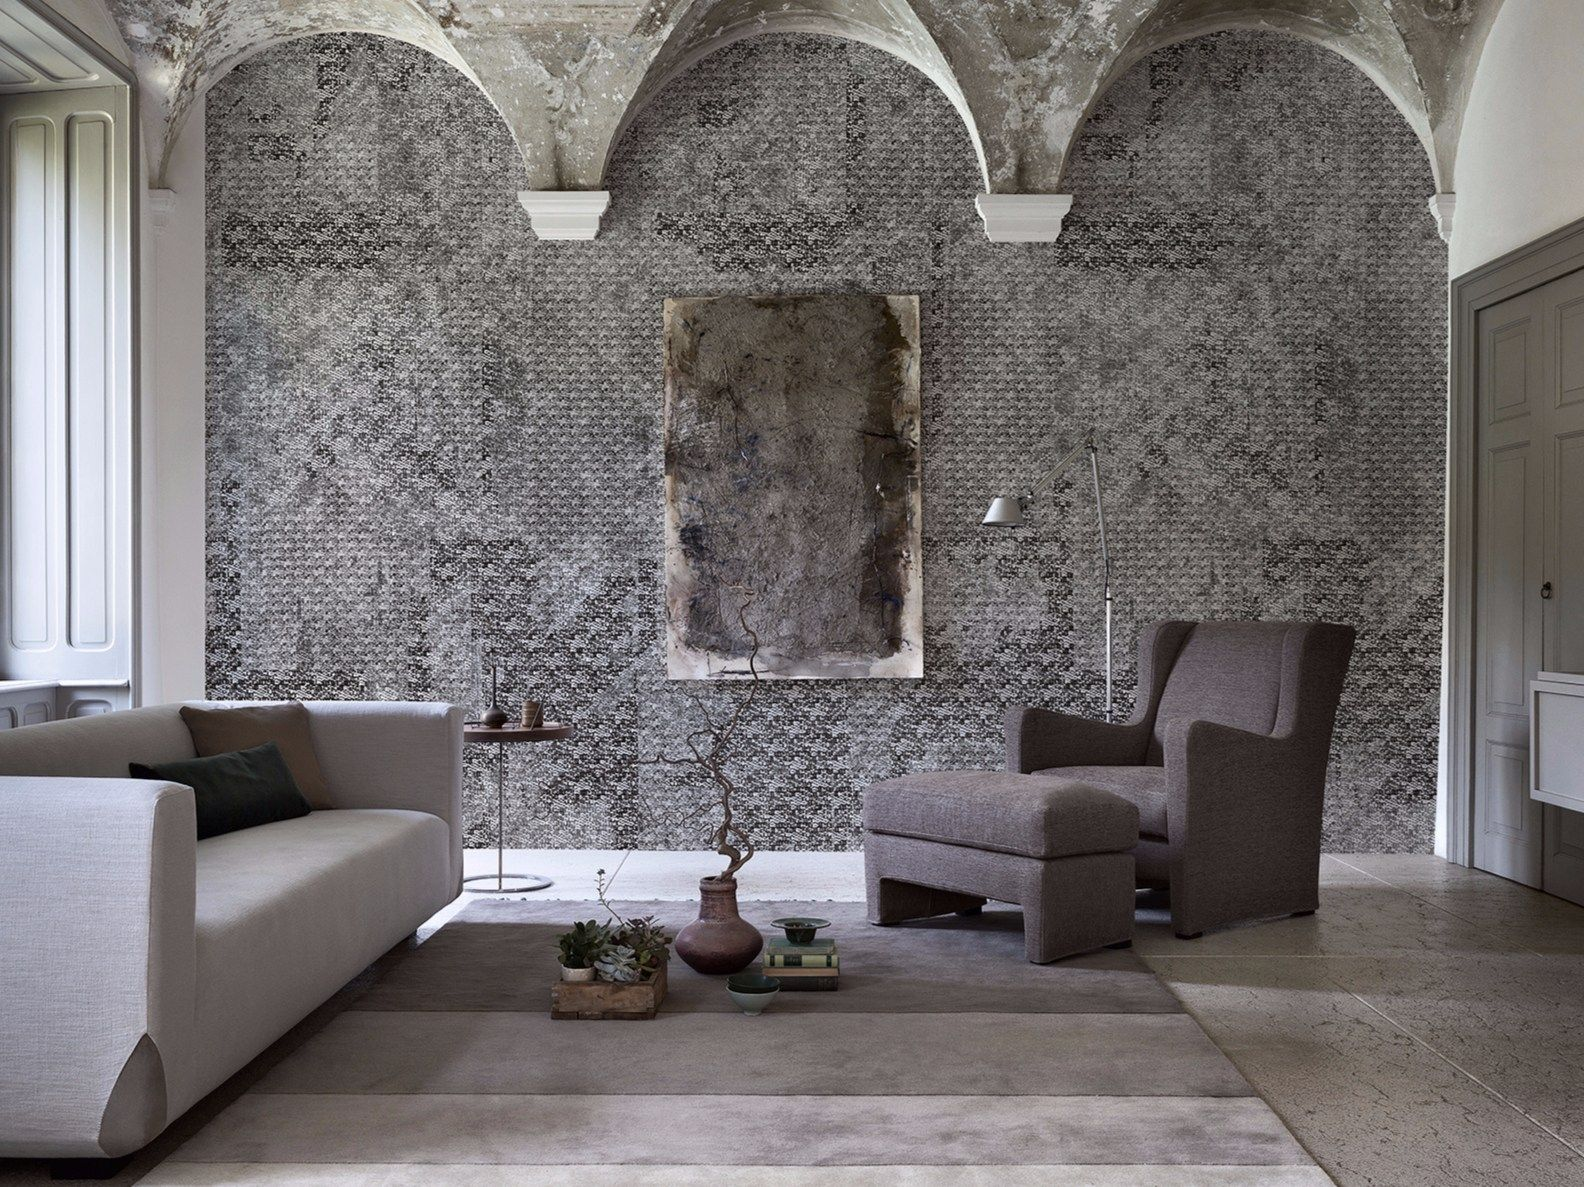 Luopificio inkiostro bianco mural decorations inspired by textile